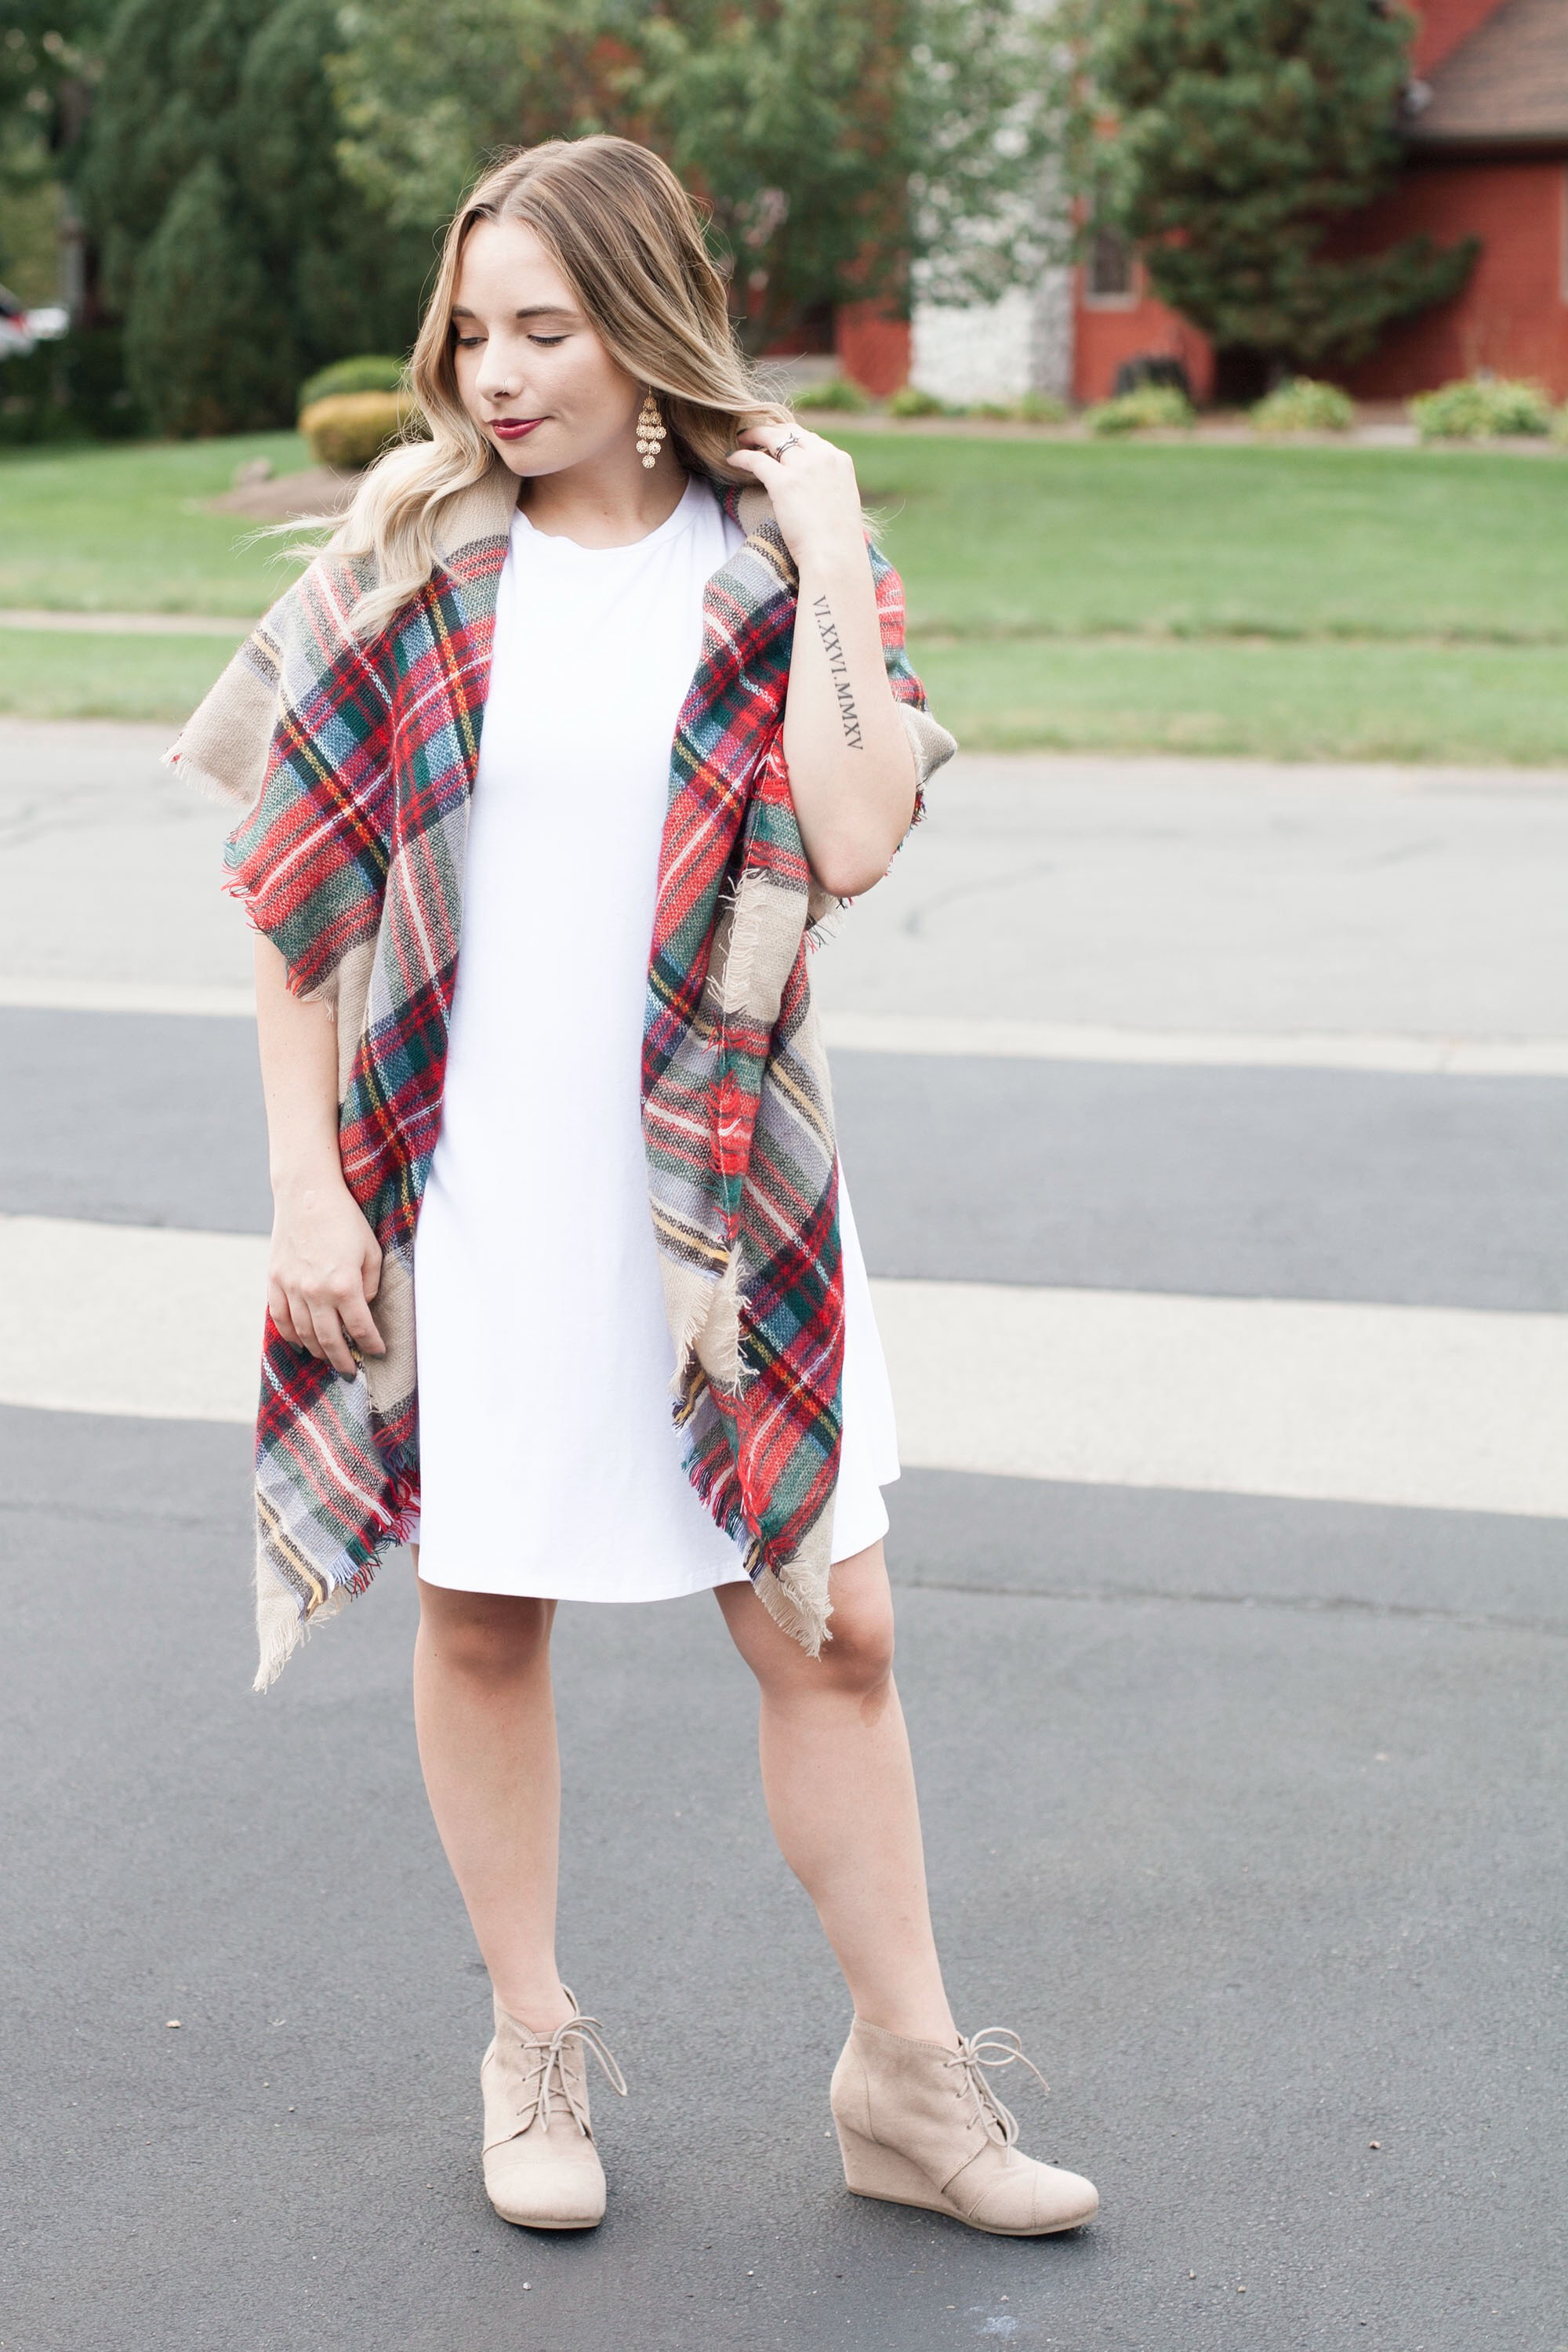 White, Casual Dress With A Blanket Scarf | Coffee With Summer